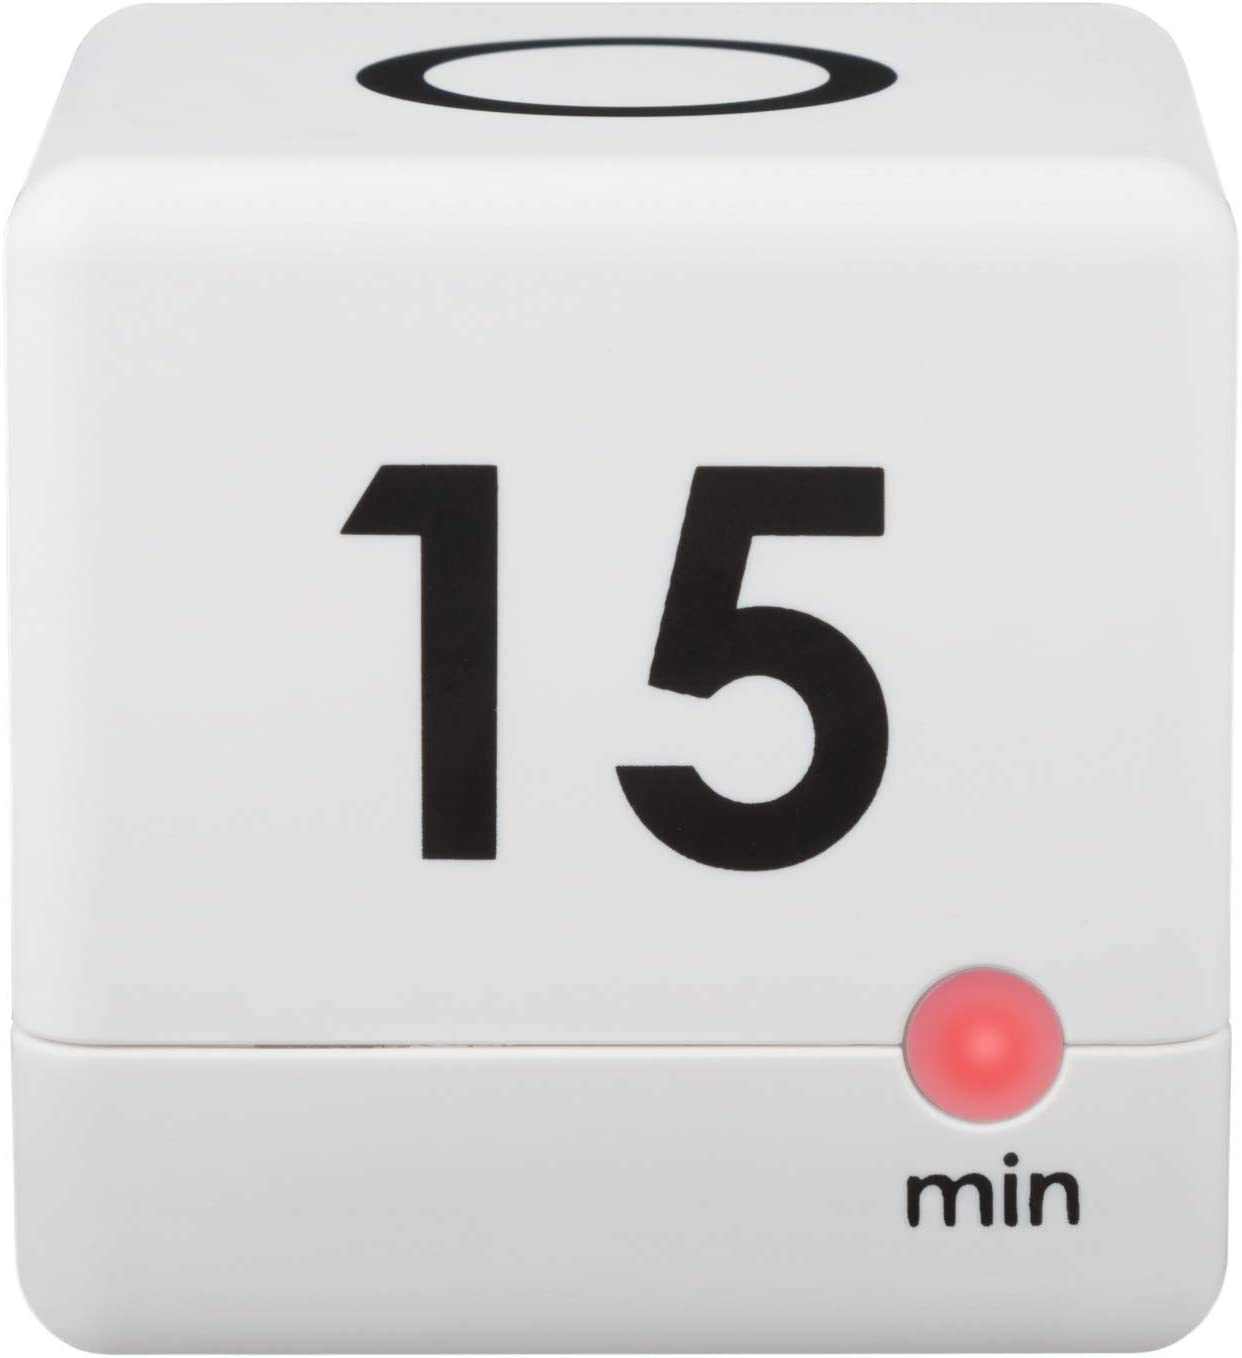 La Crosse Technology 919-186-60WH 5, 15, 30 or 60 Minutes Cube Timer - White